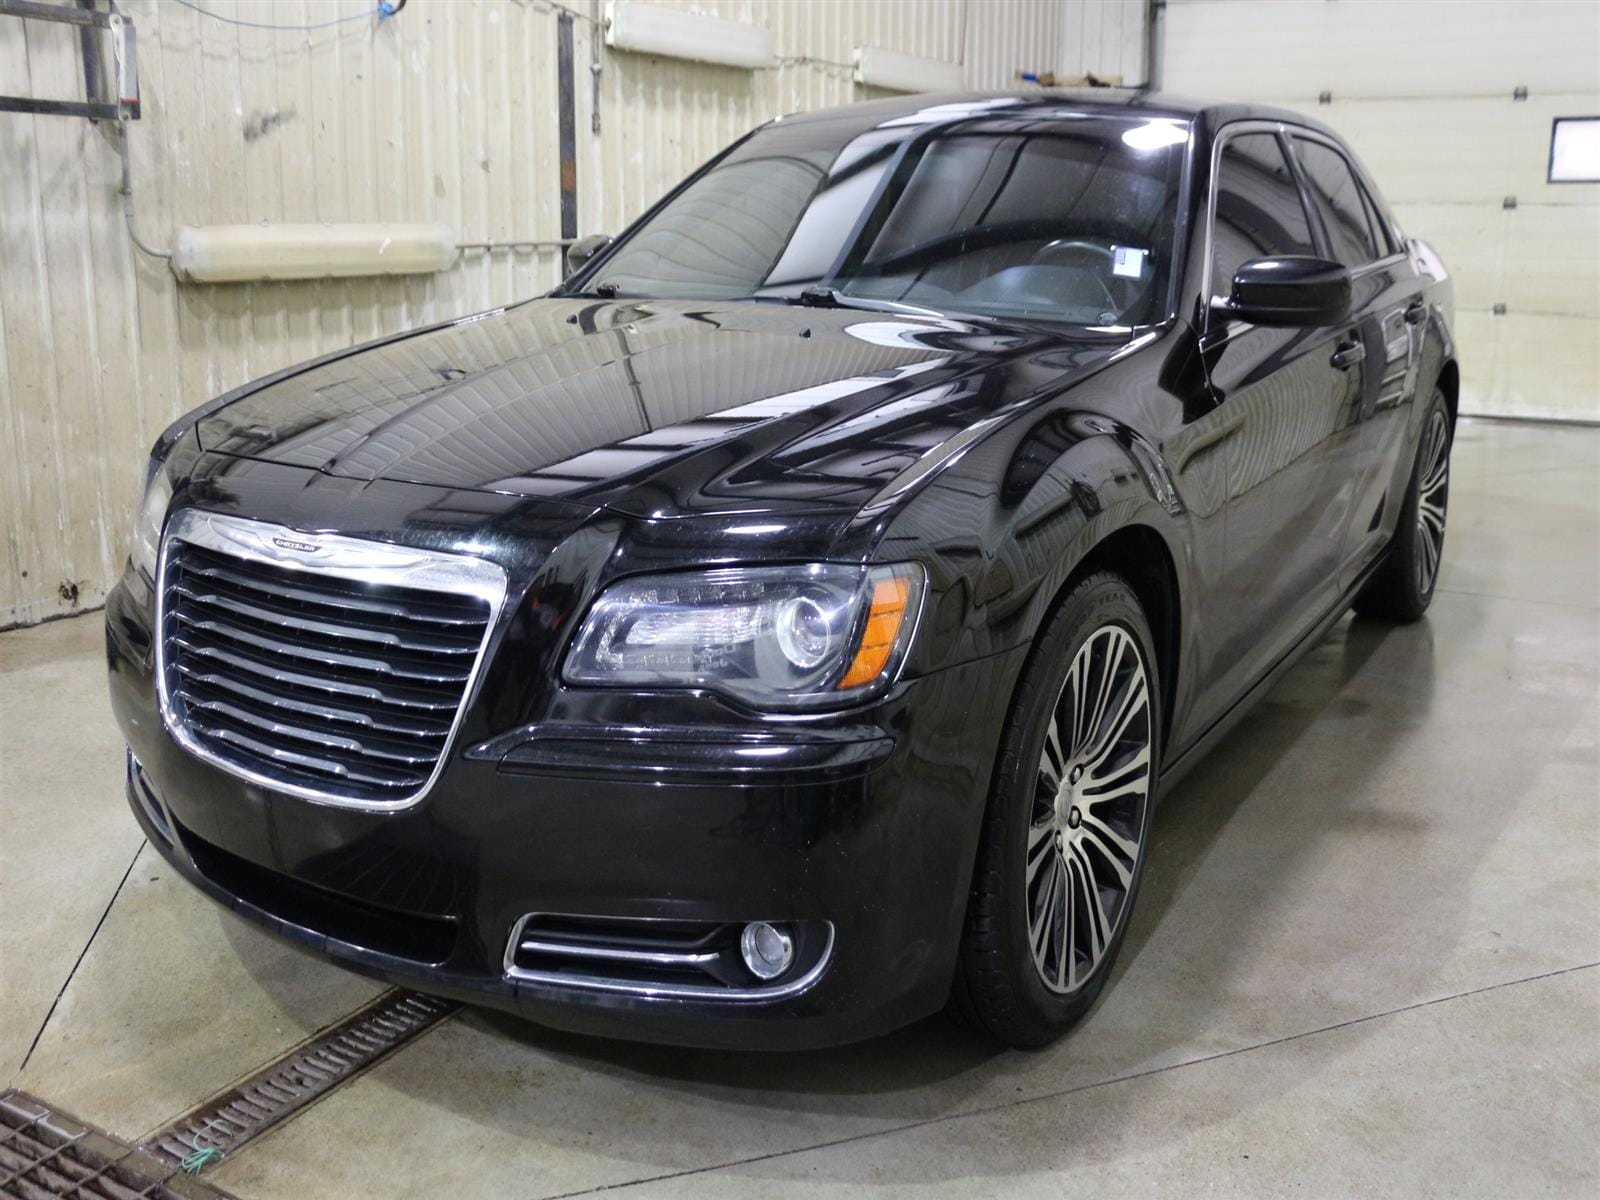 2013 Chrysler 300 S RWD Sedan